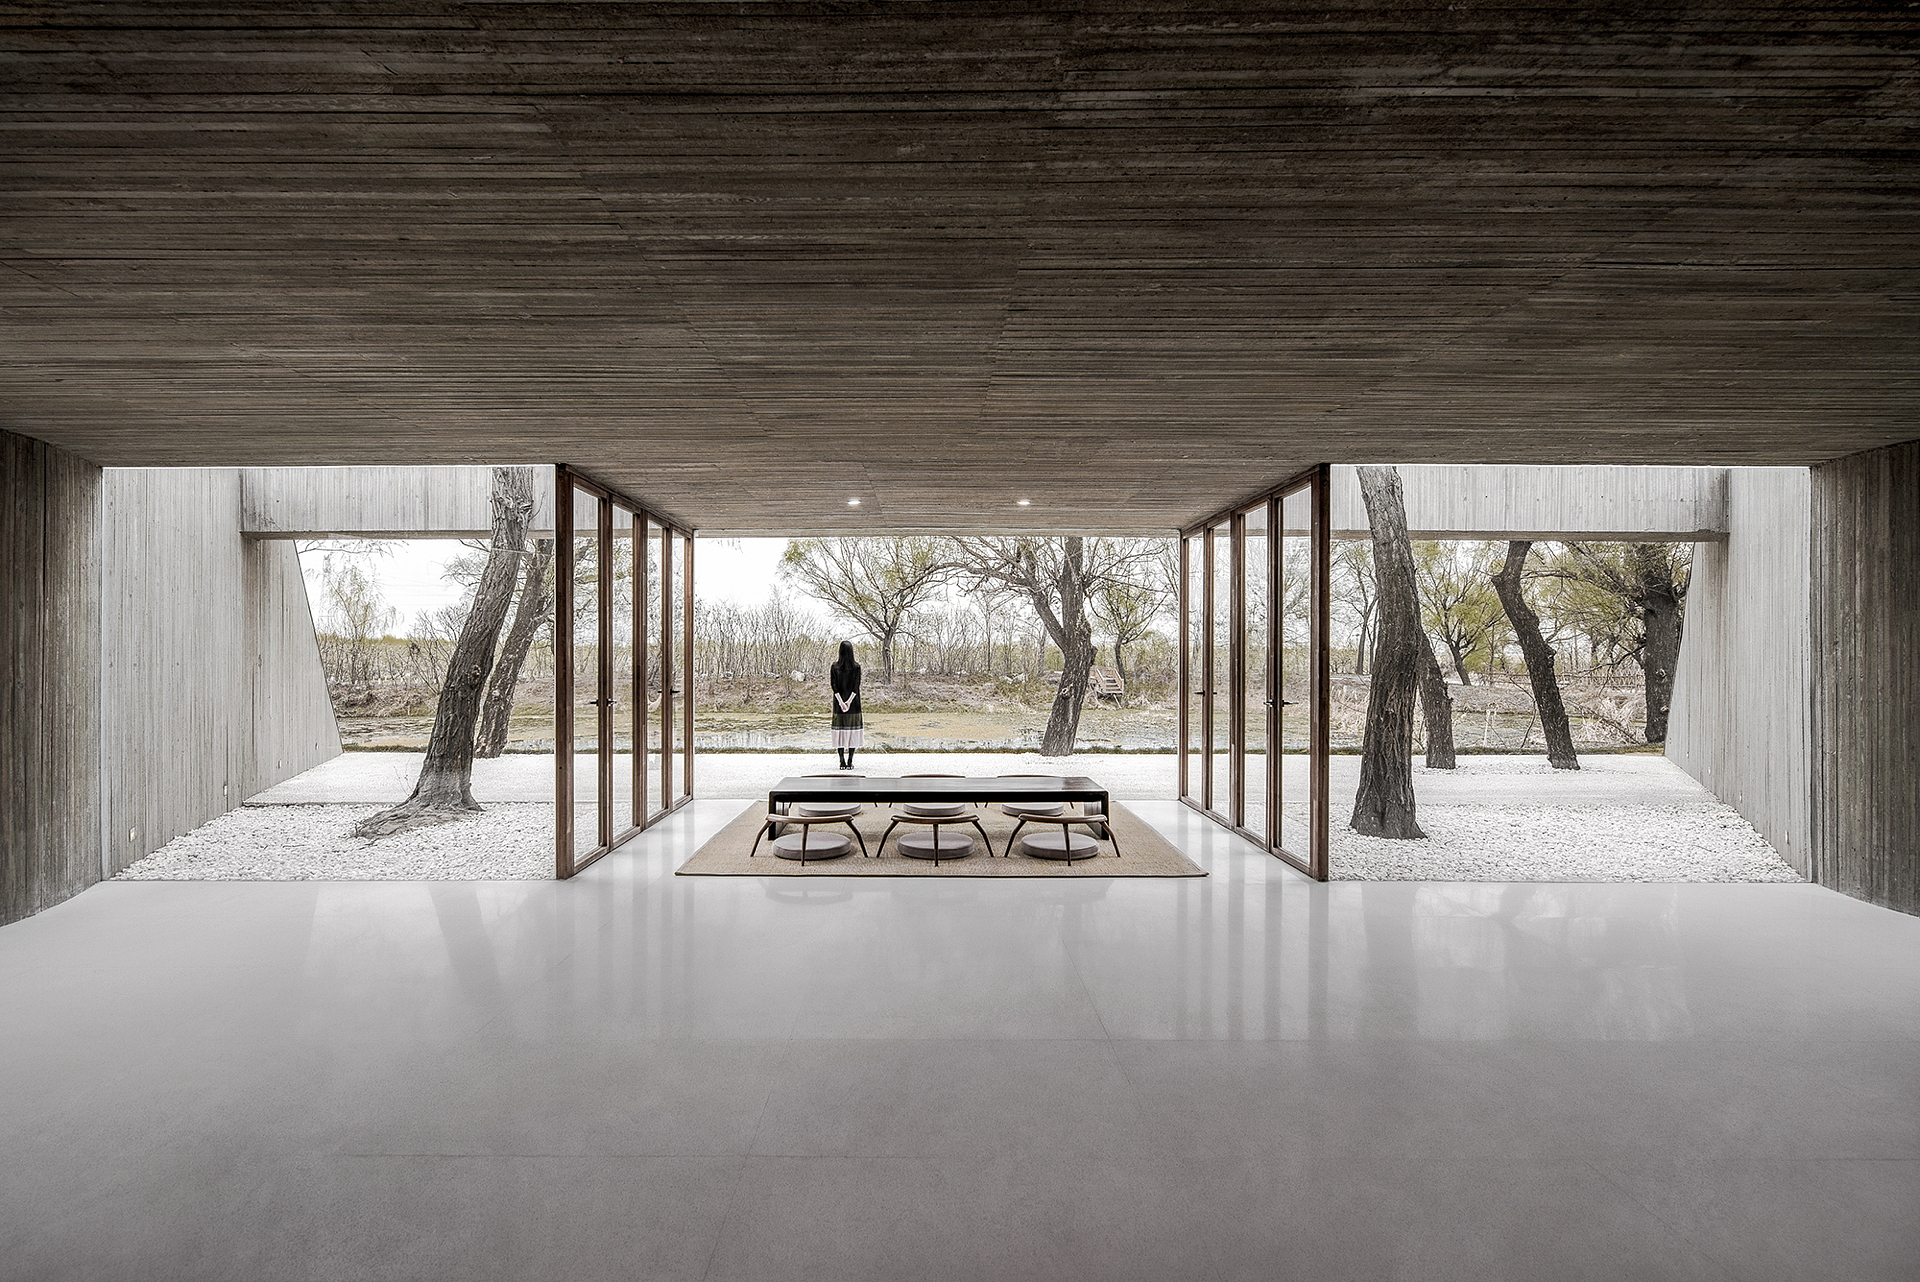 Archstudio Buddhist Temple On The River In Tangshan China